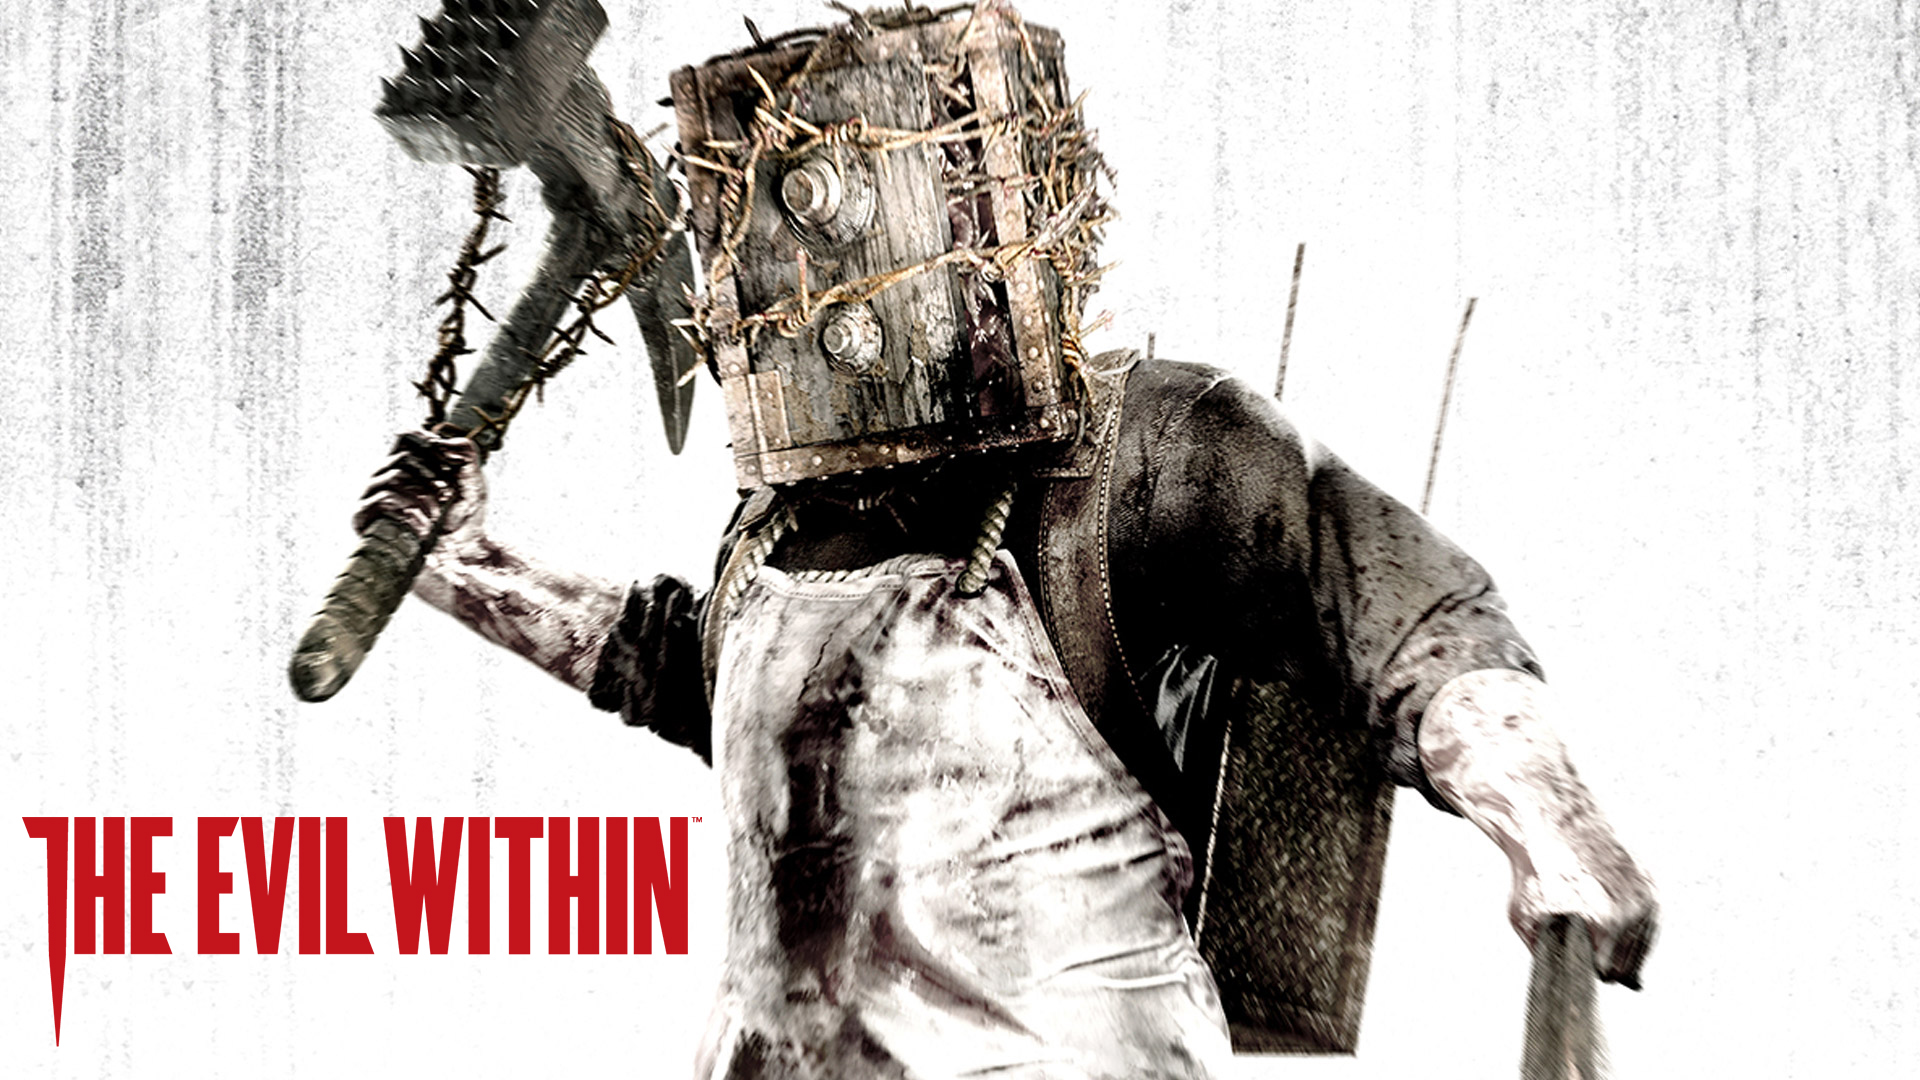 The Evil Within Wallpaper 10